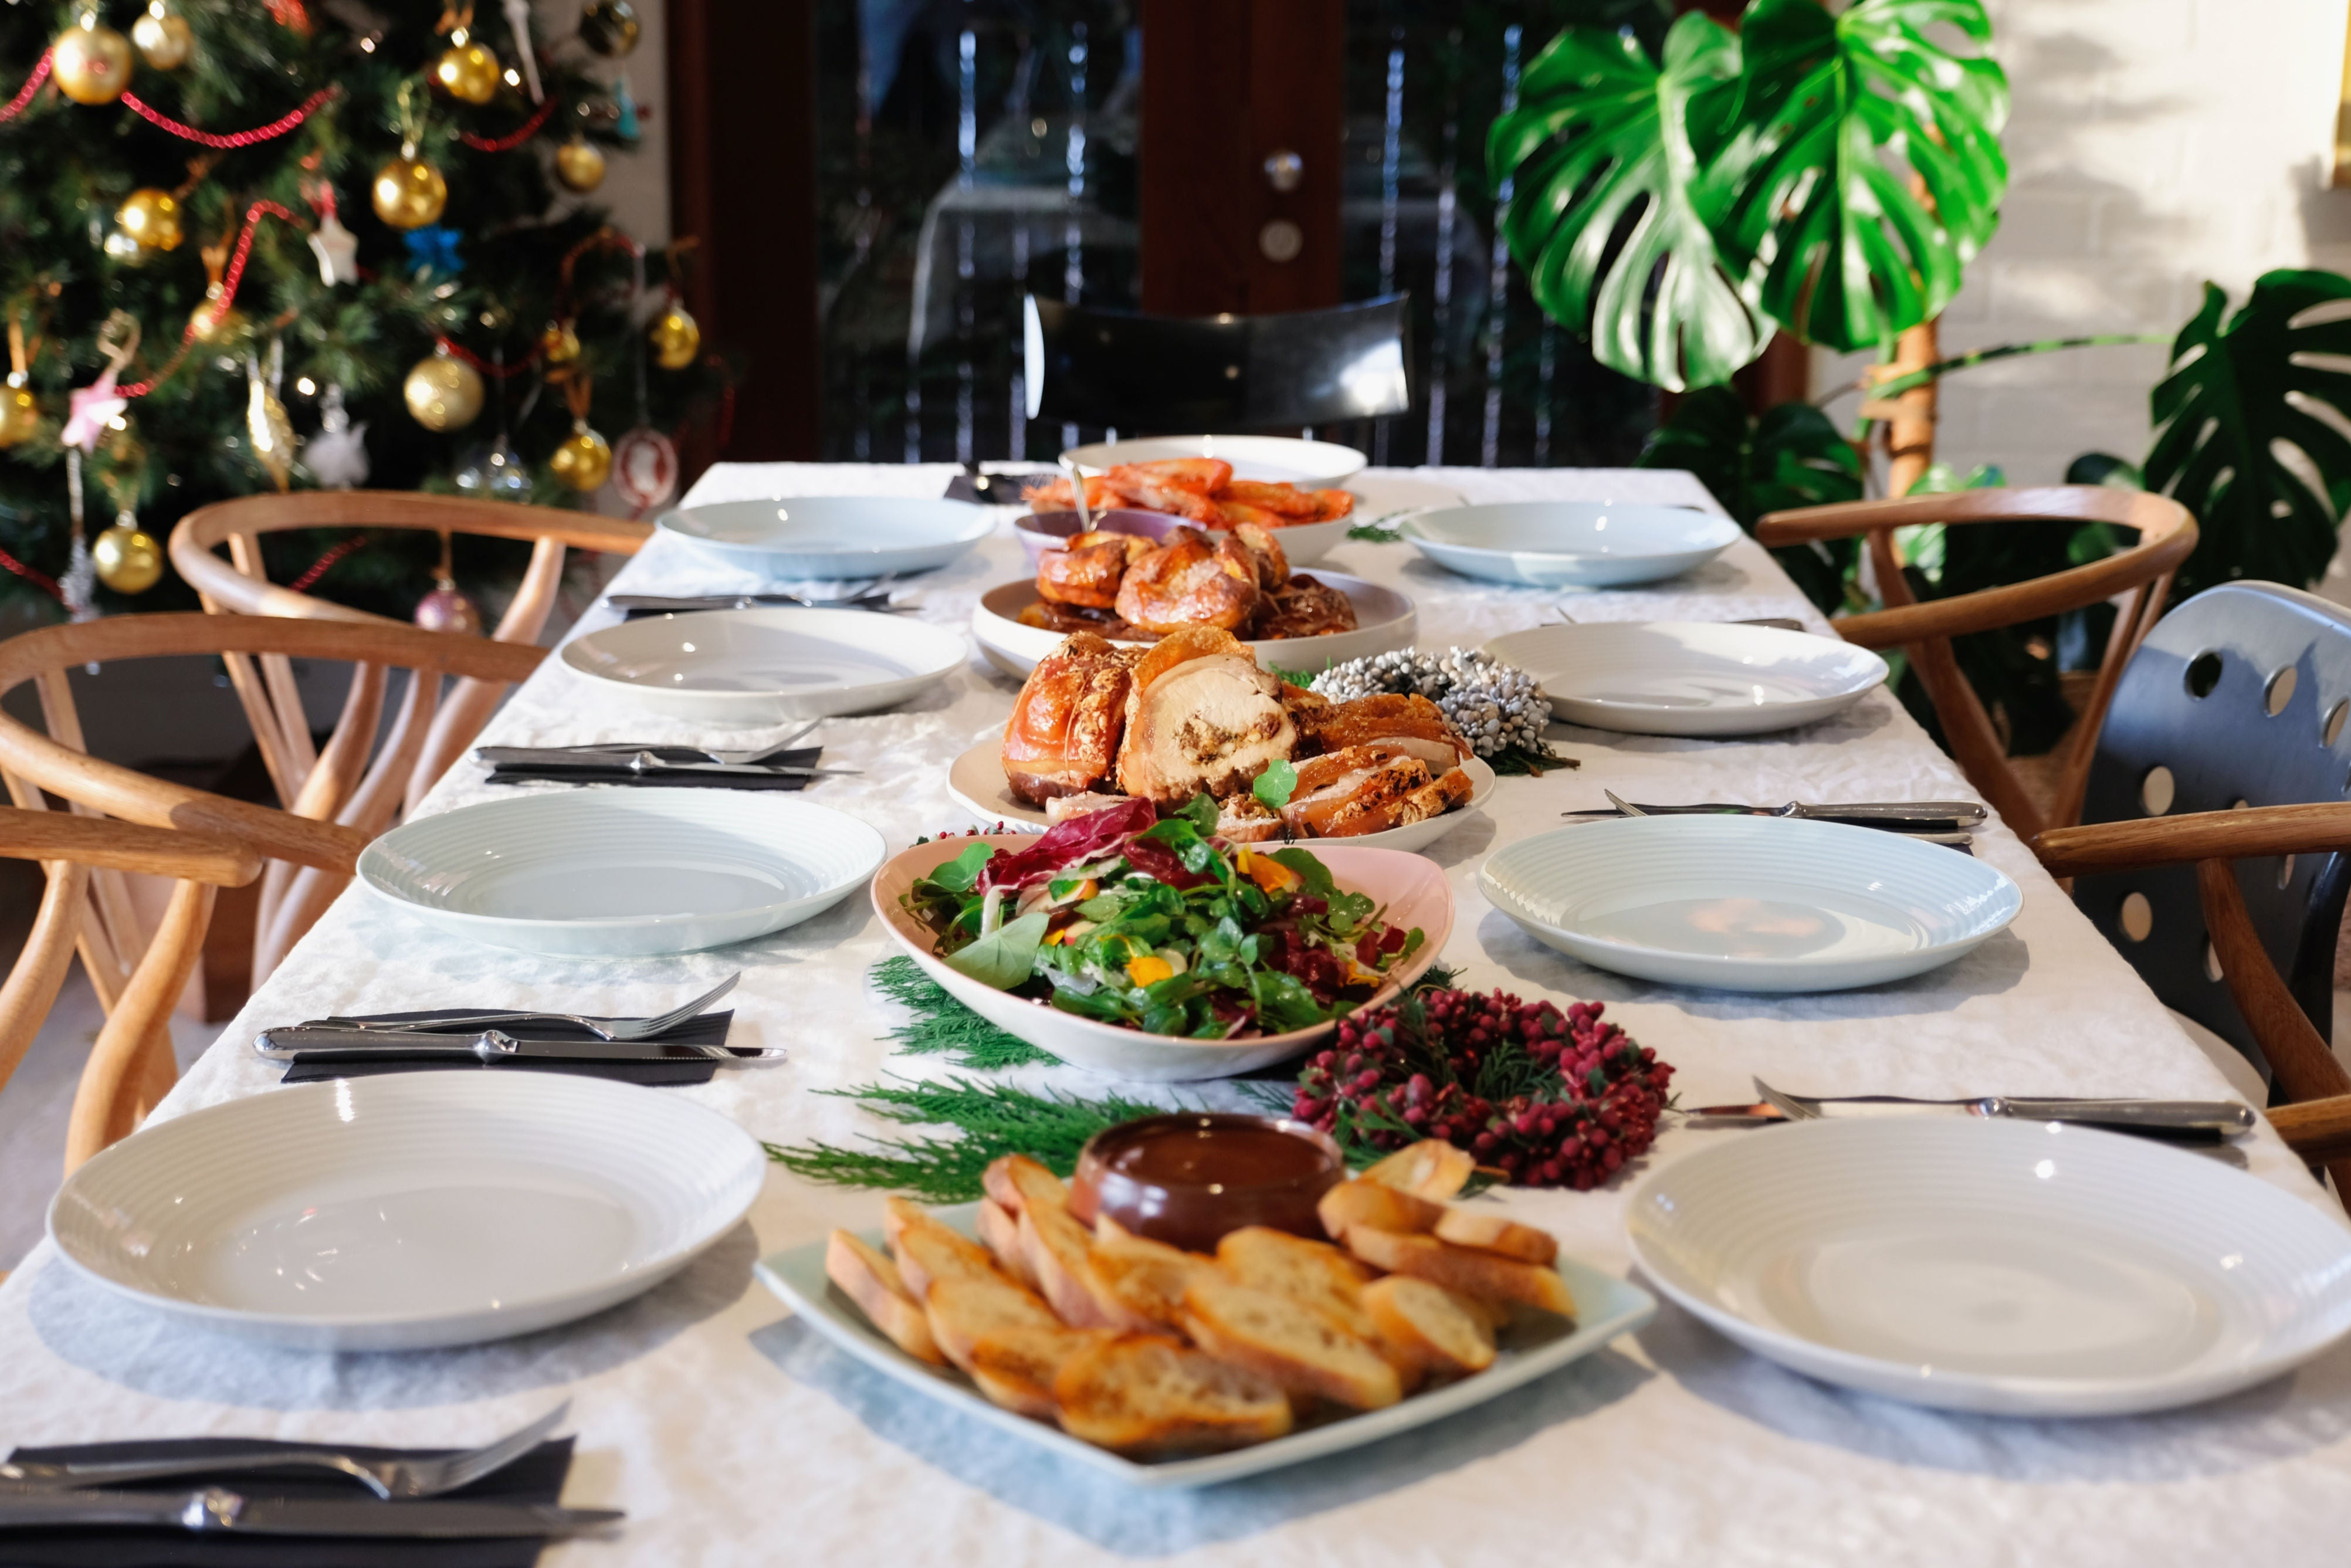 Enjoy this Thankfully Nourished Christmas Banquet